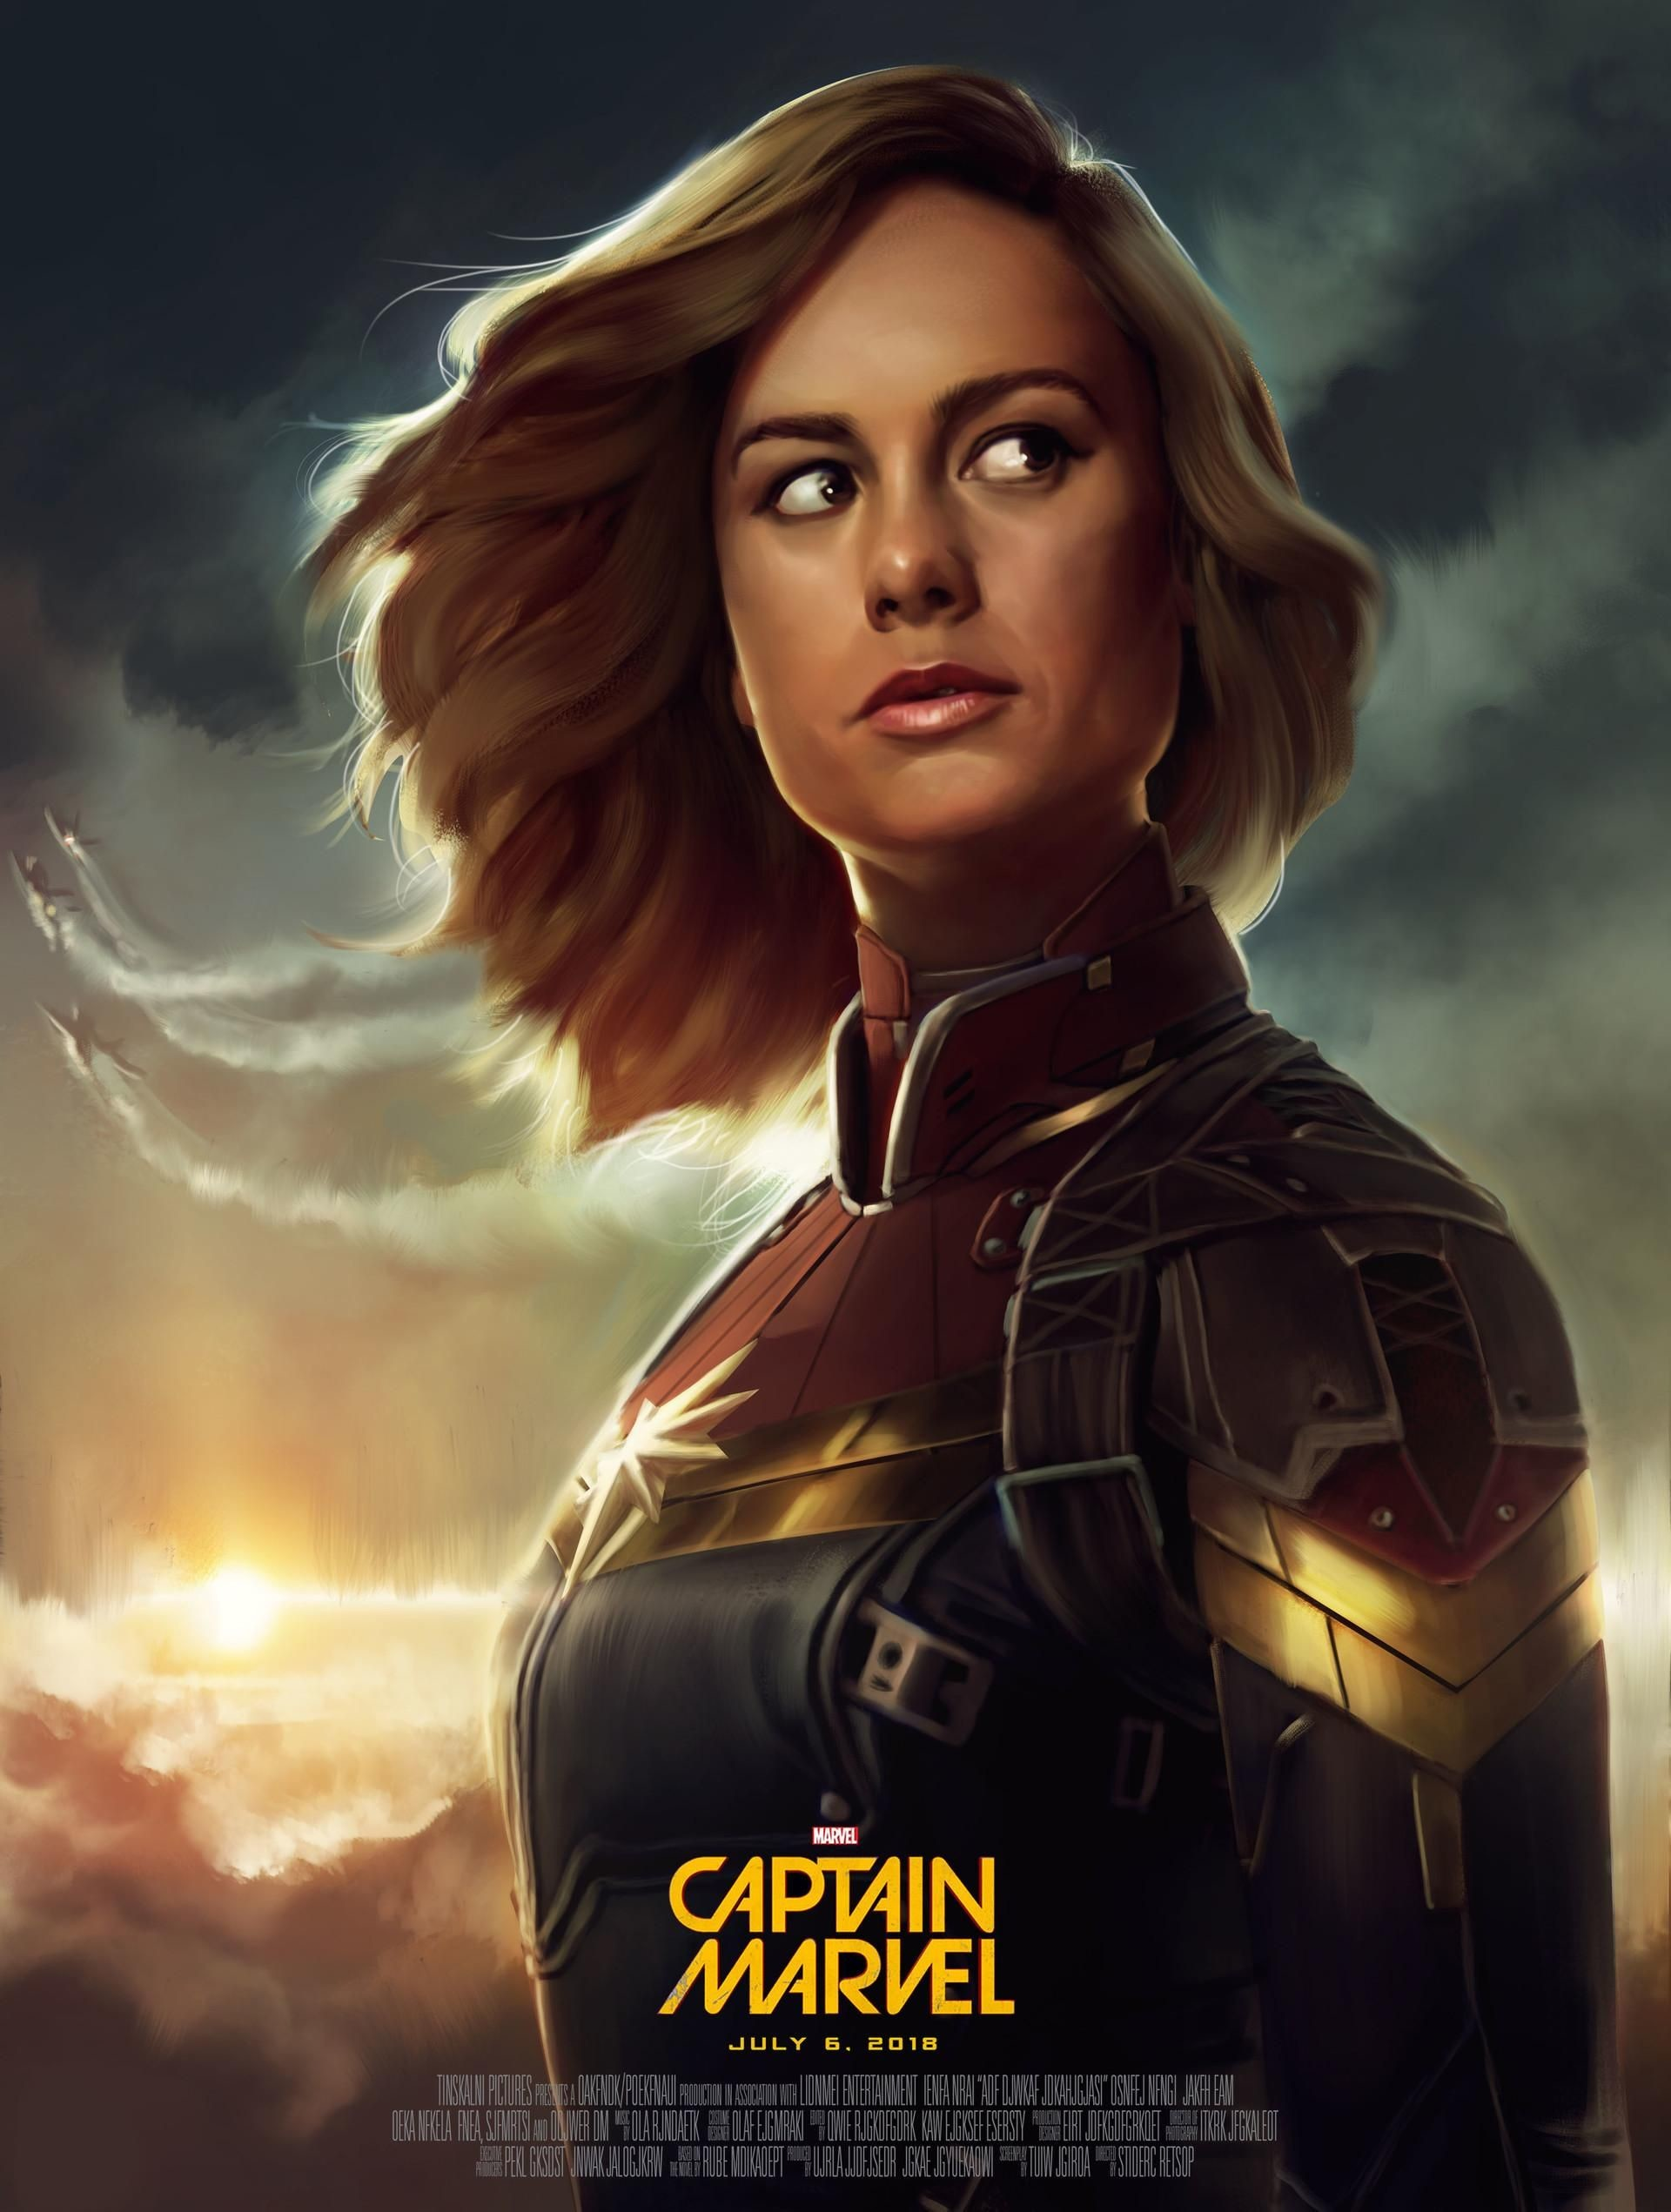 Res: 1920x2542, Captain Marvel (2019) HD Wallpaper From Gallsource.com